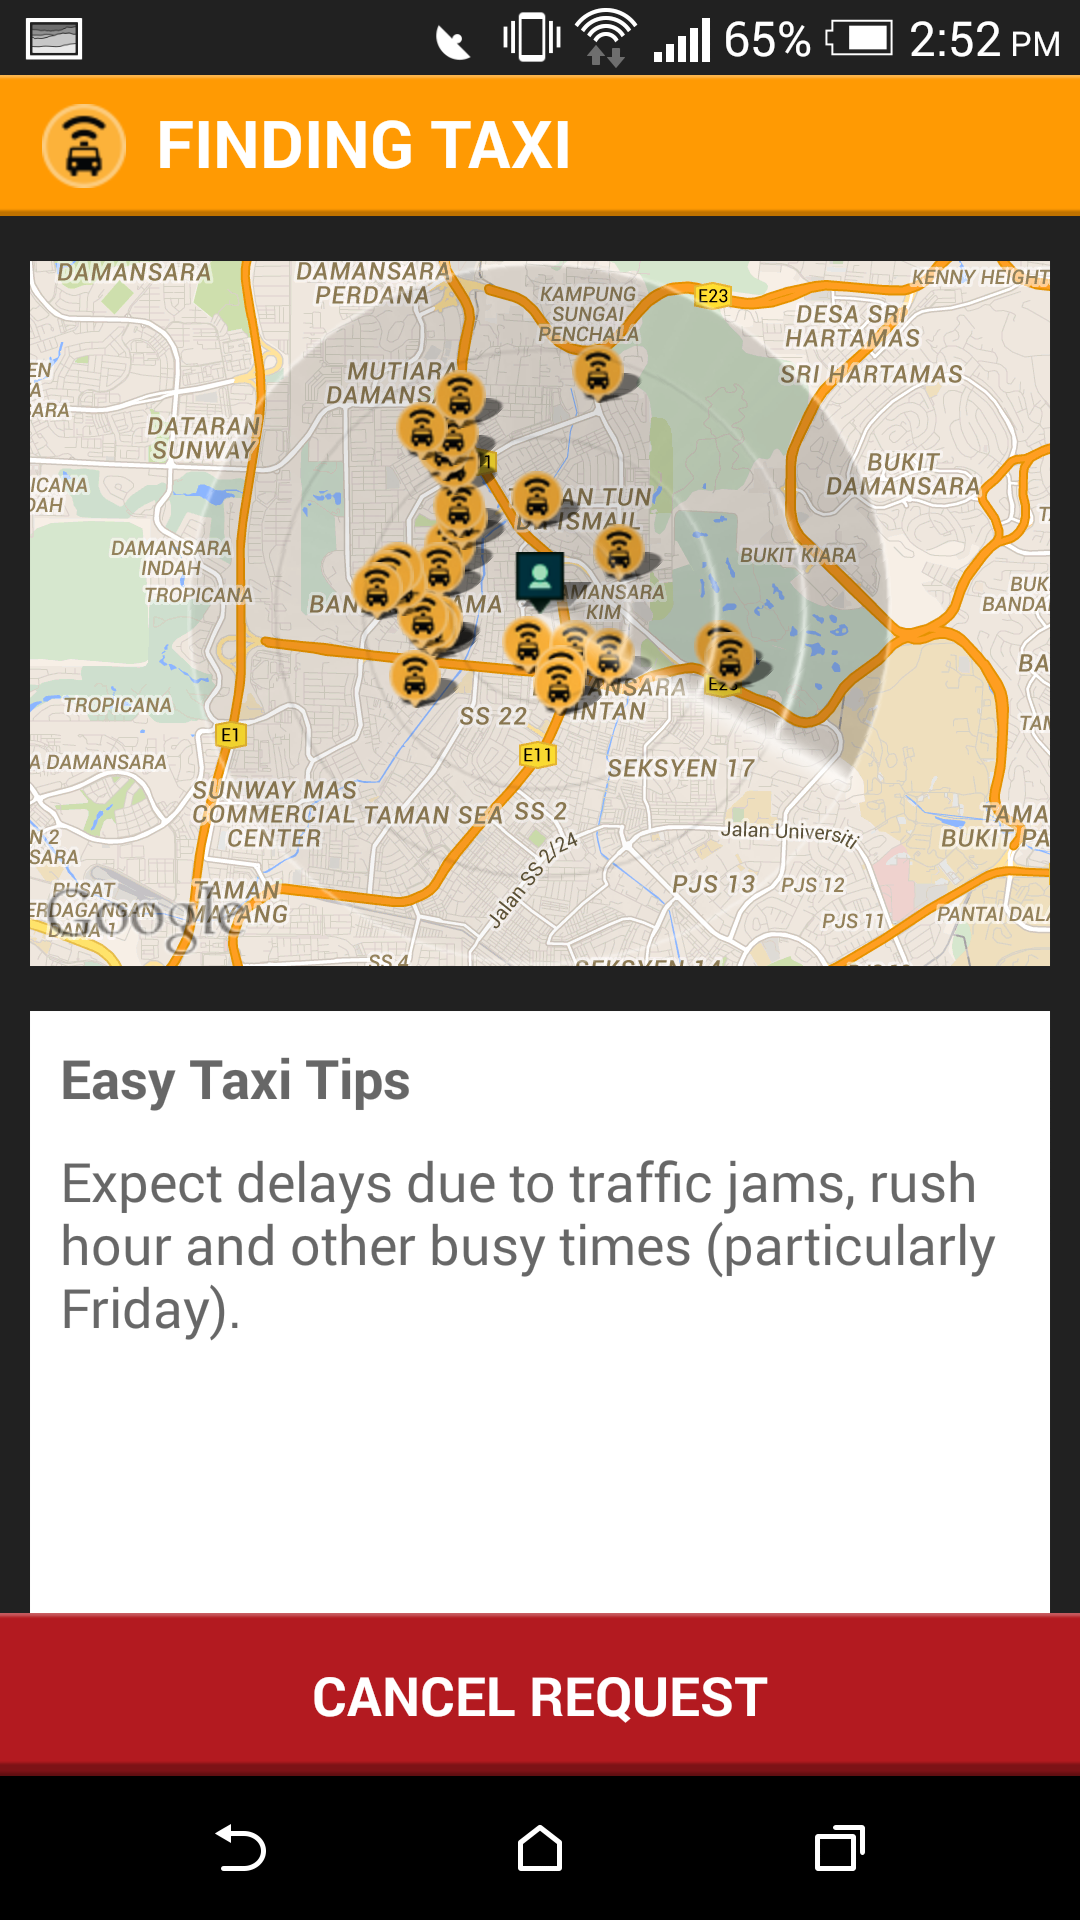 Easy Taxi allows users to opt to pay either by cash or credit, giving customers a choice for passengers.